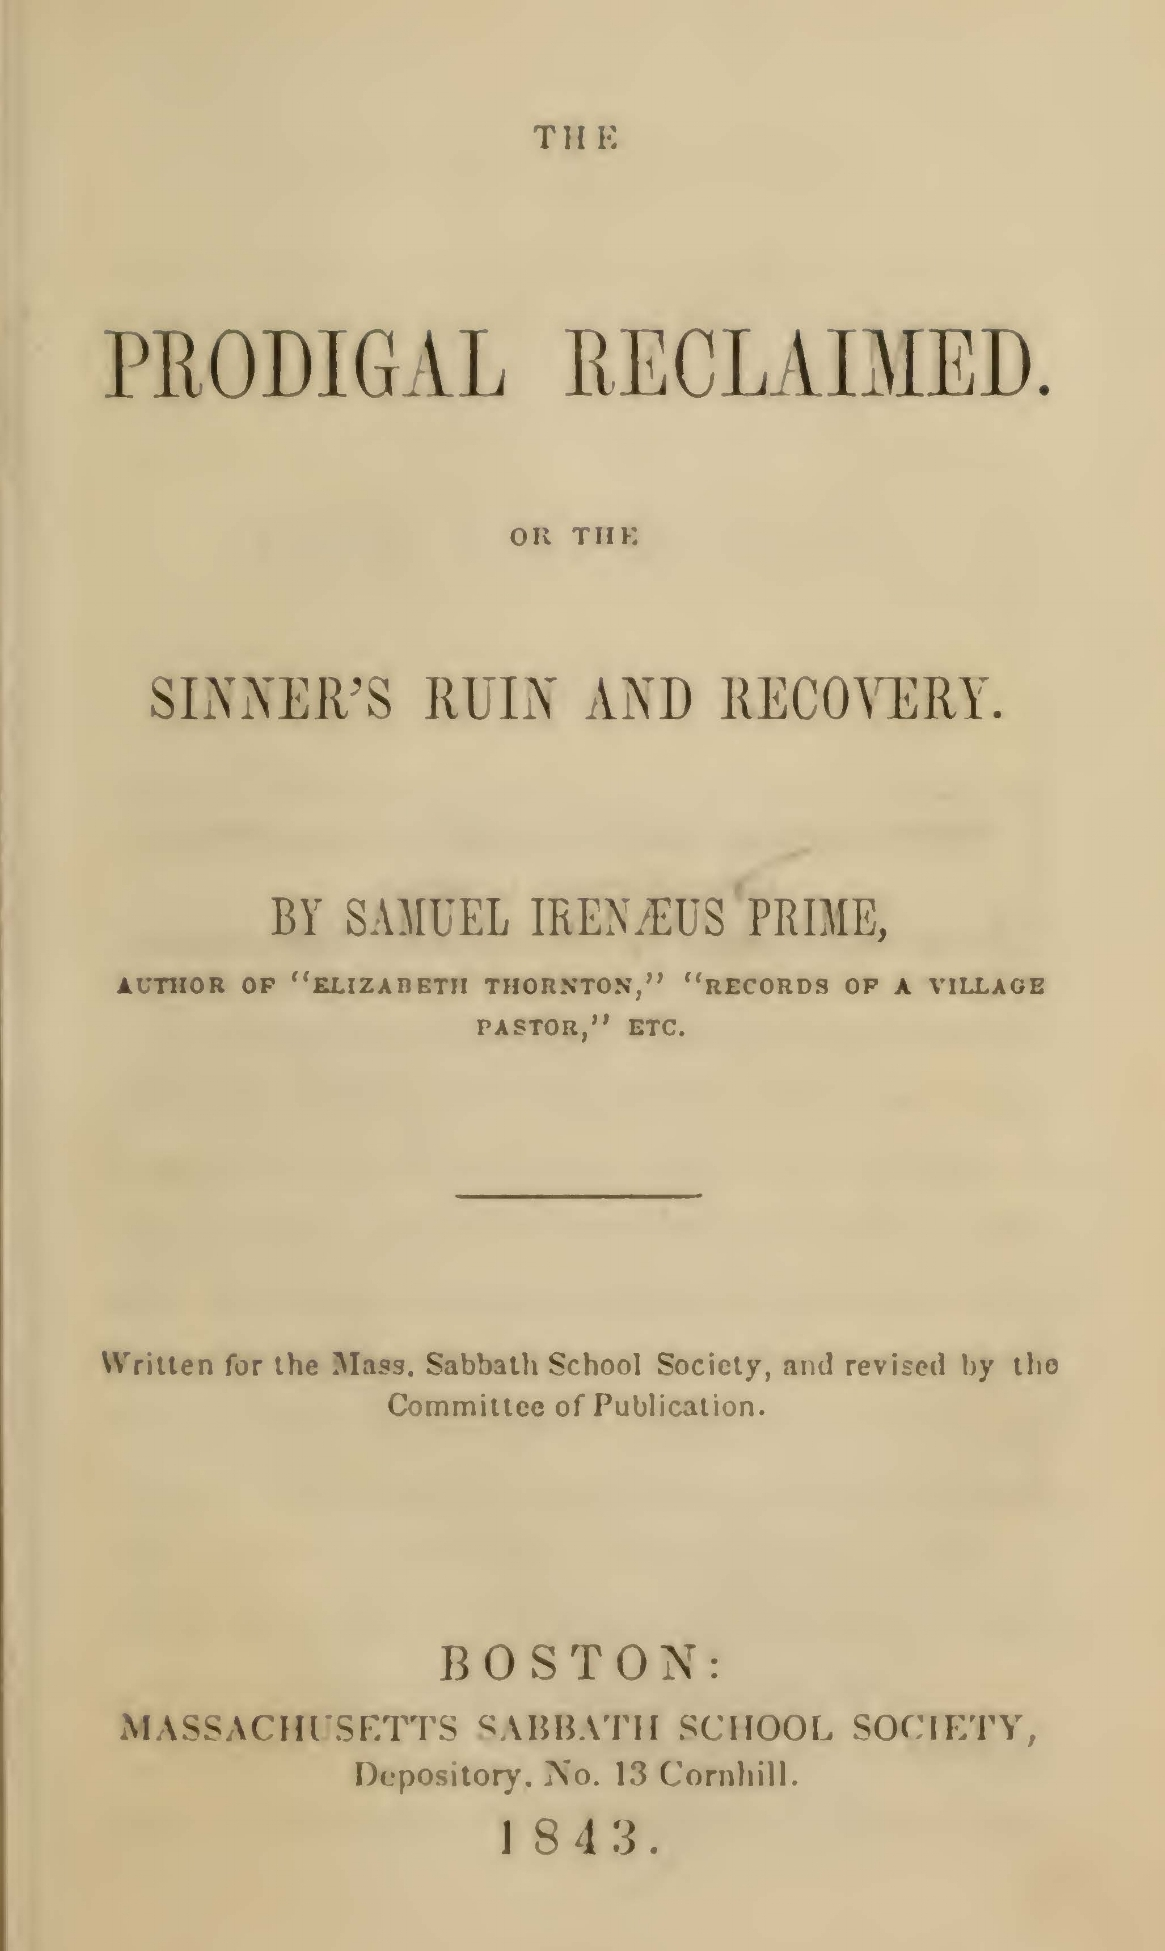 Prime, Samuel Irenaeus, The Prodigal Reclaimed Title Page.jpg